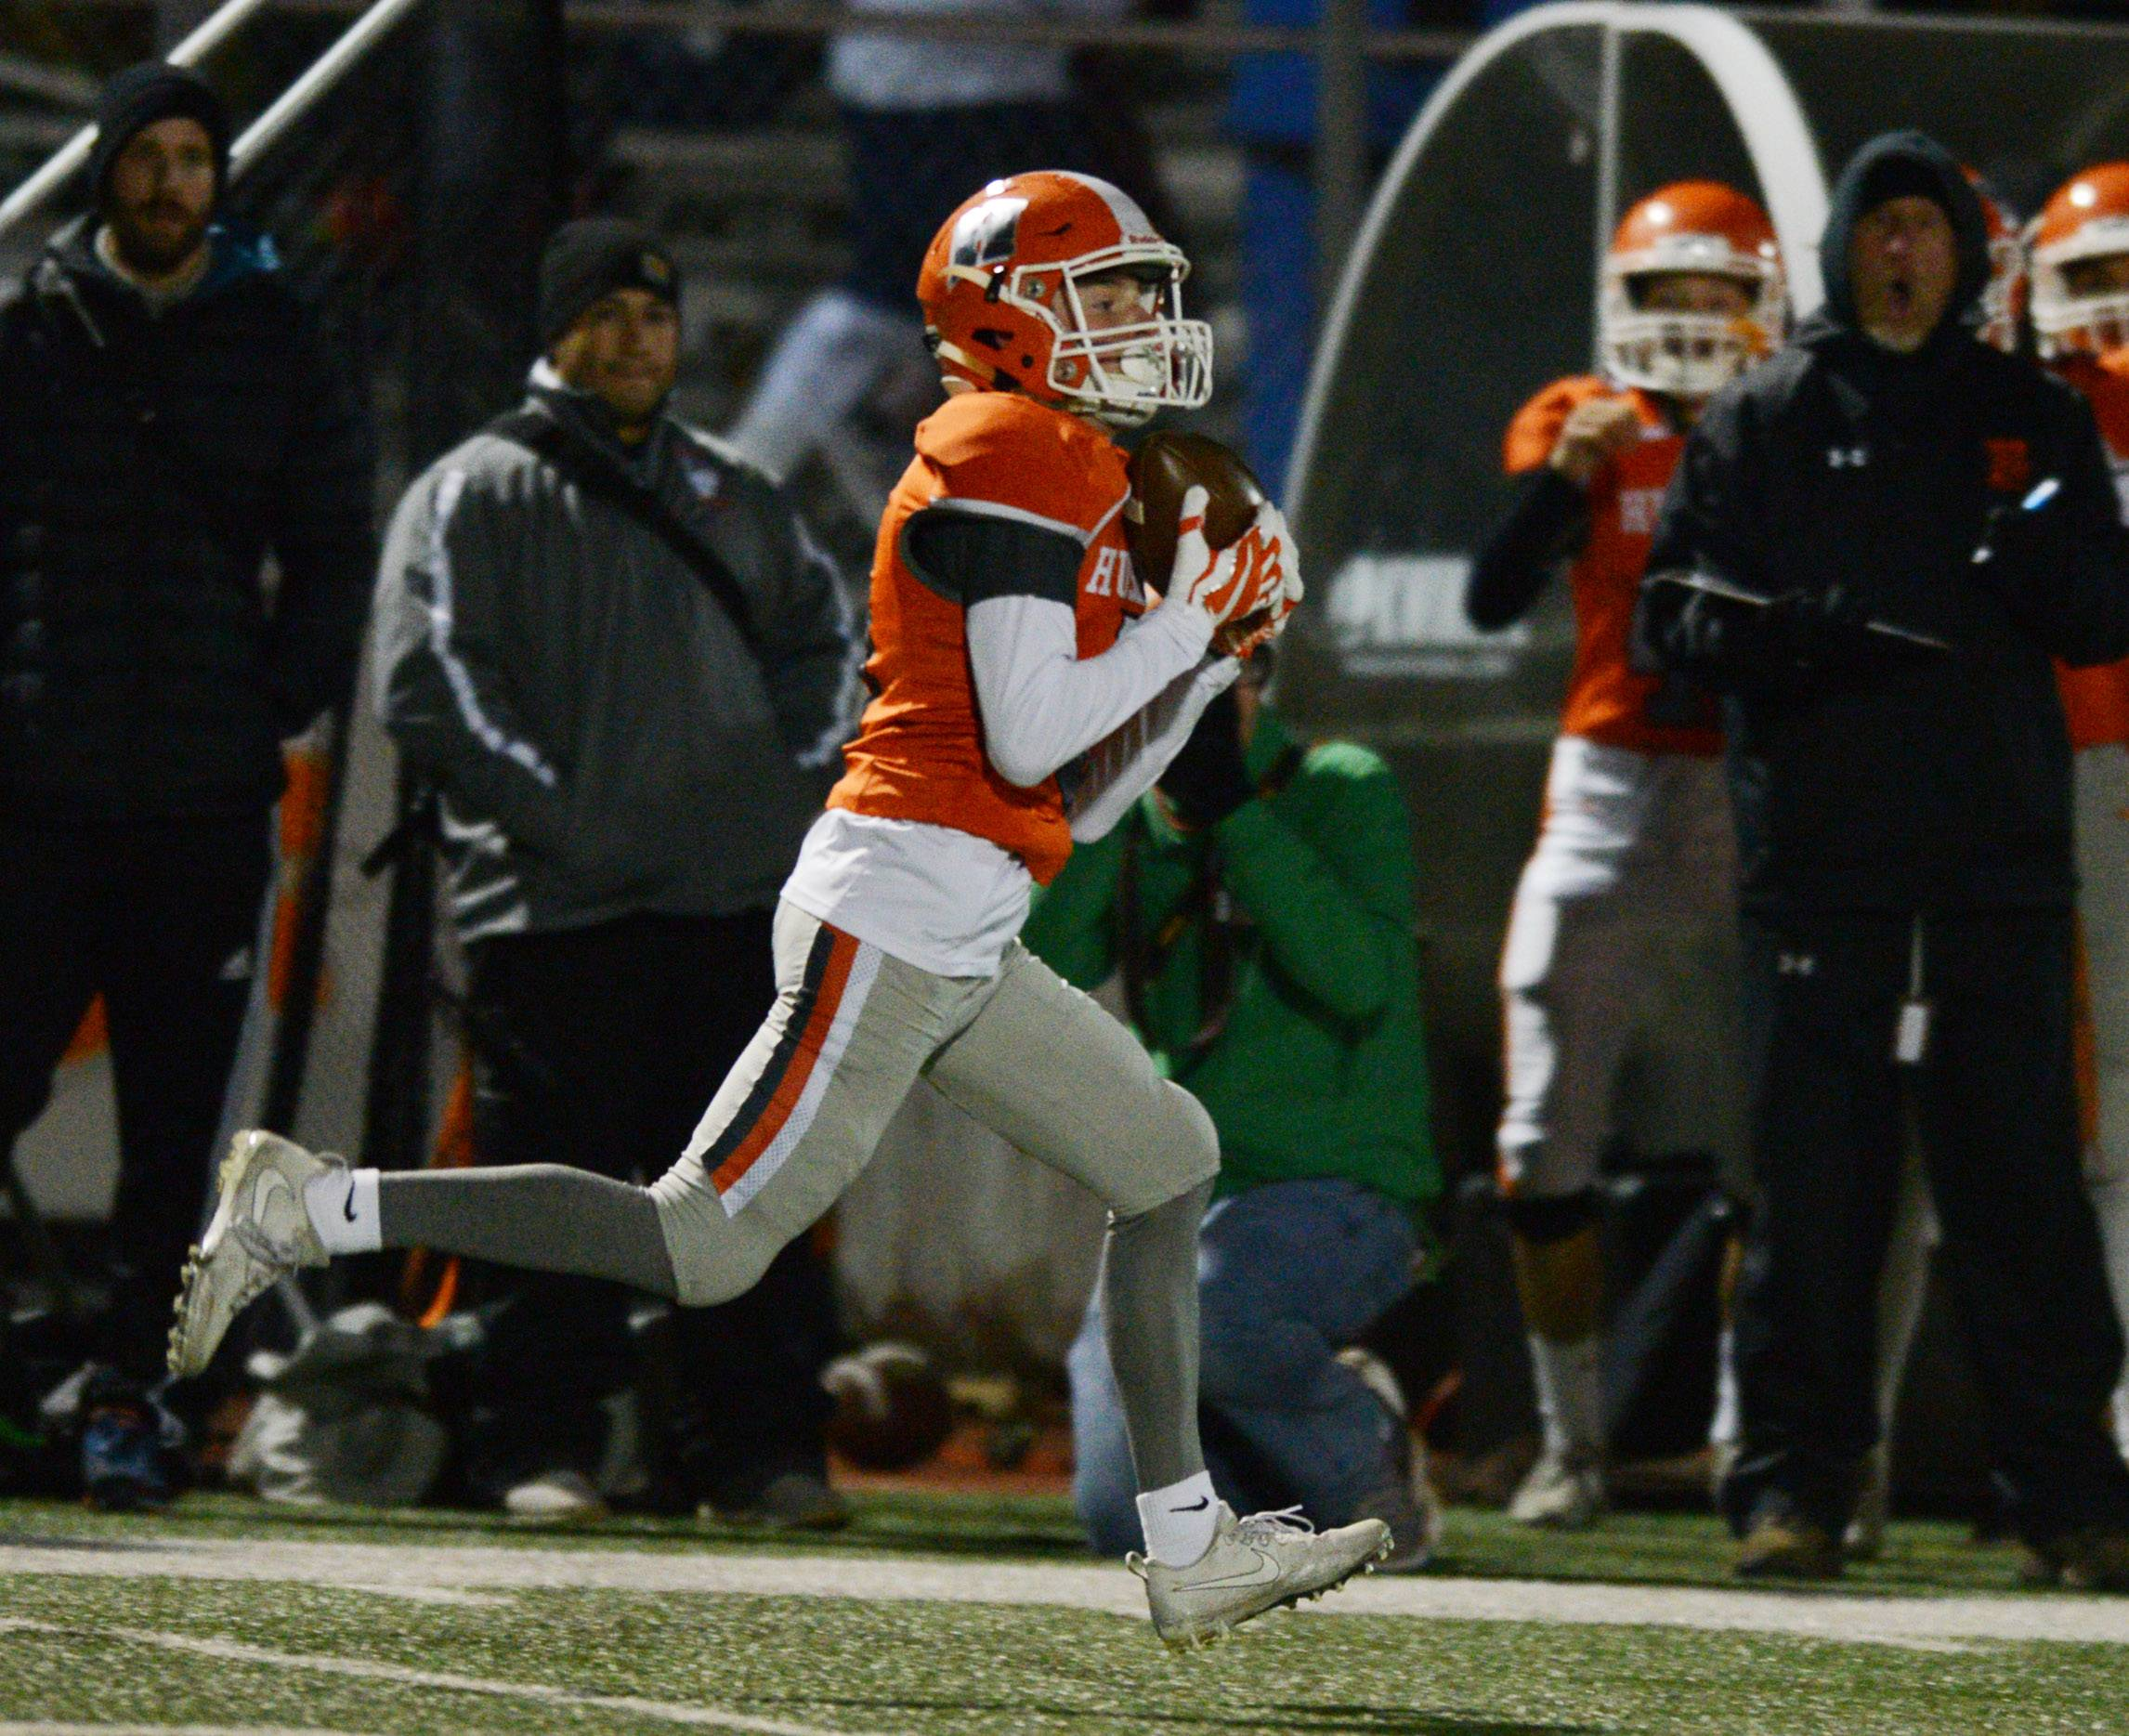 Hersey's Ian Ziegenhorn finishes a 96-yard touchdown catch in the third quarter during Class 7A first-round playoff action against Rolling Meadows in Arlington Heights on Friday.